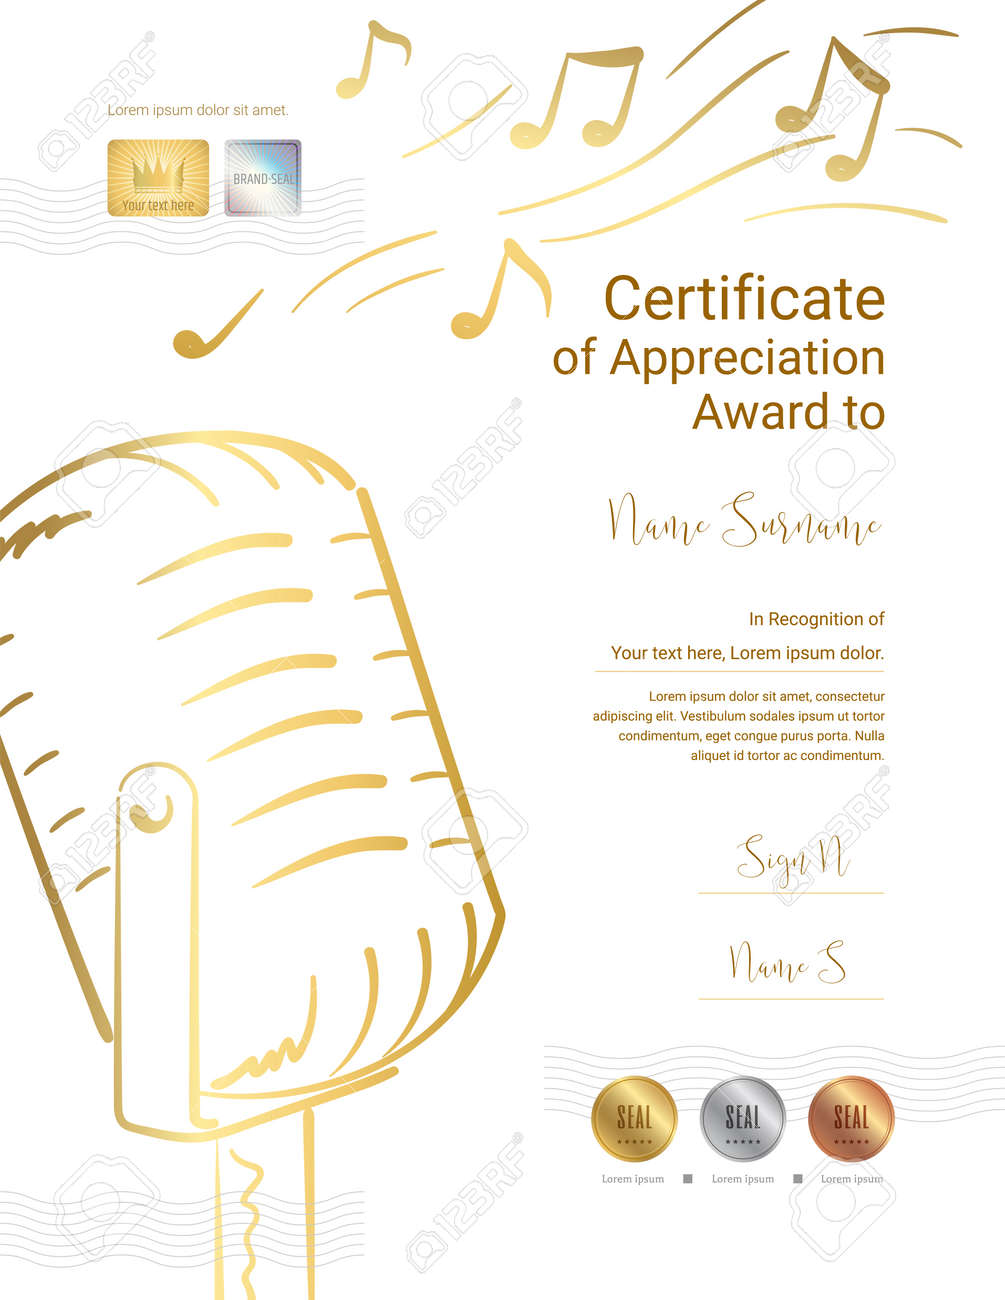 Luxury certificate template for singing, song or music event, Diploma design for graduation or completion - 158465014